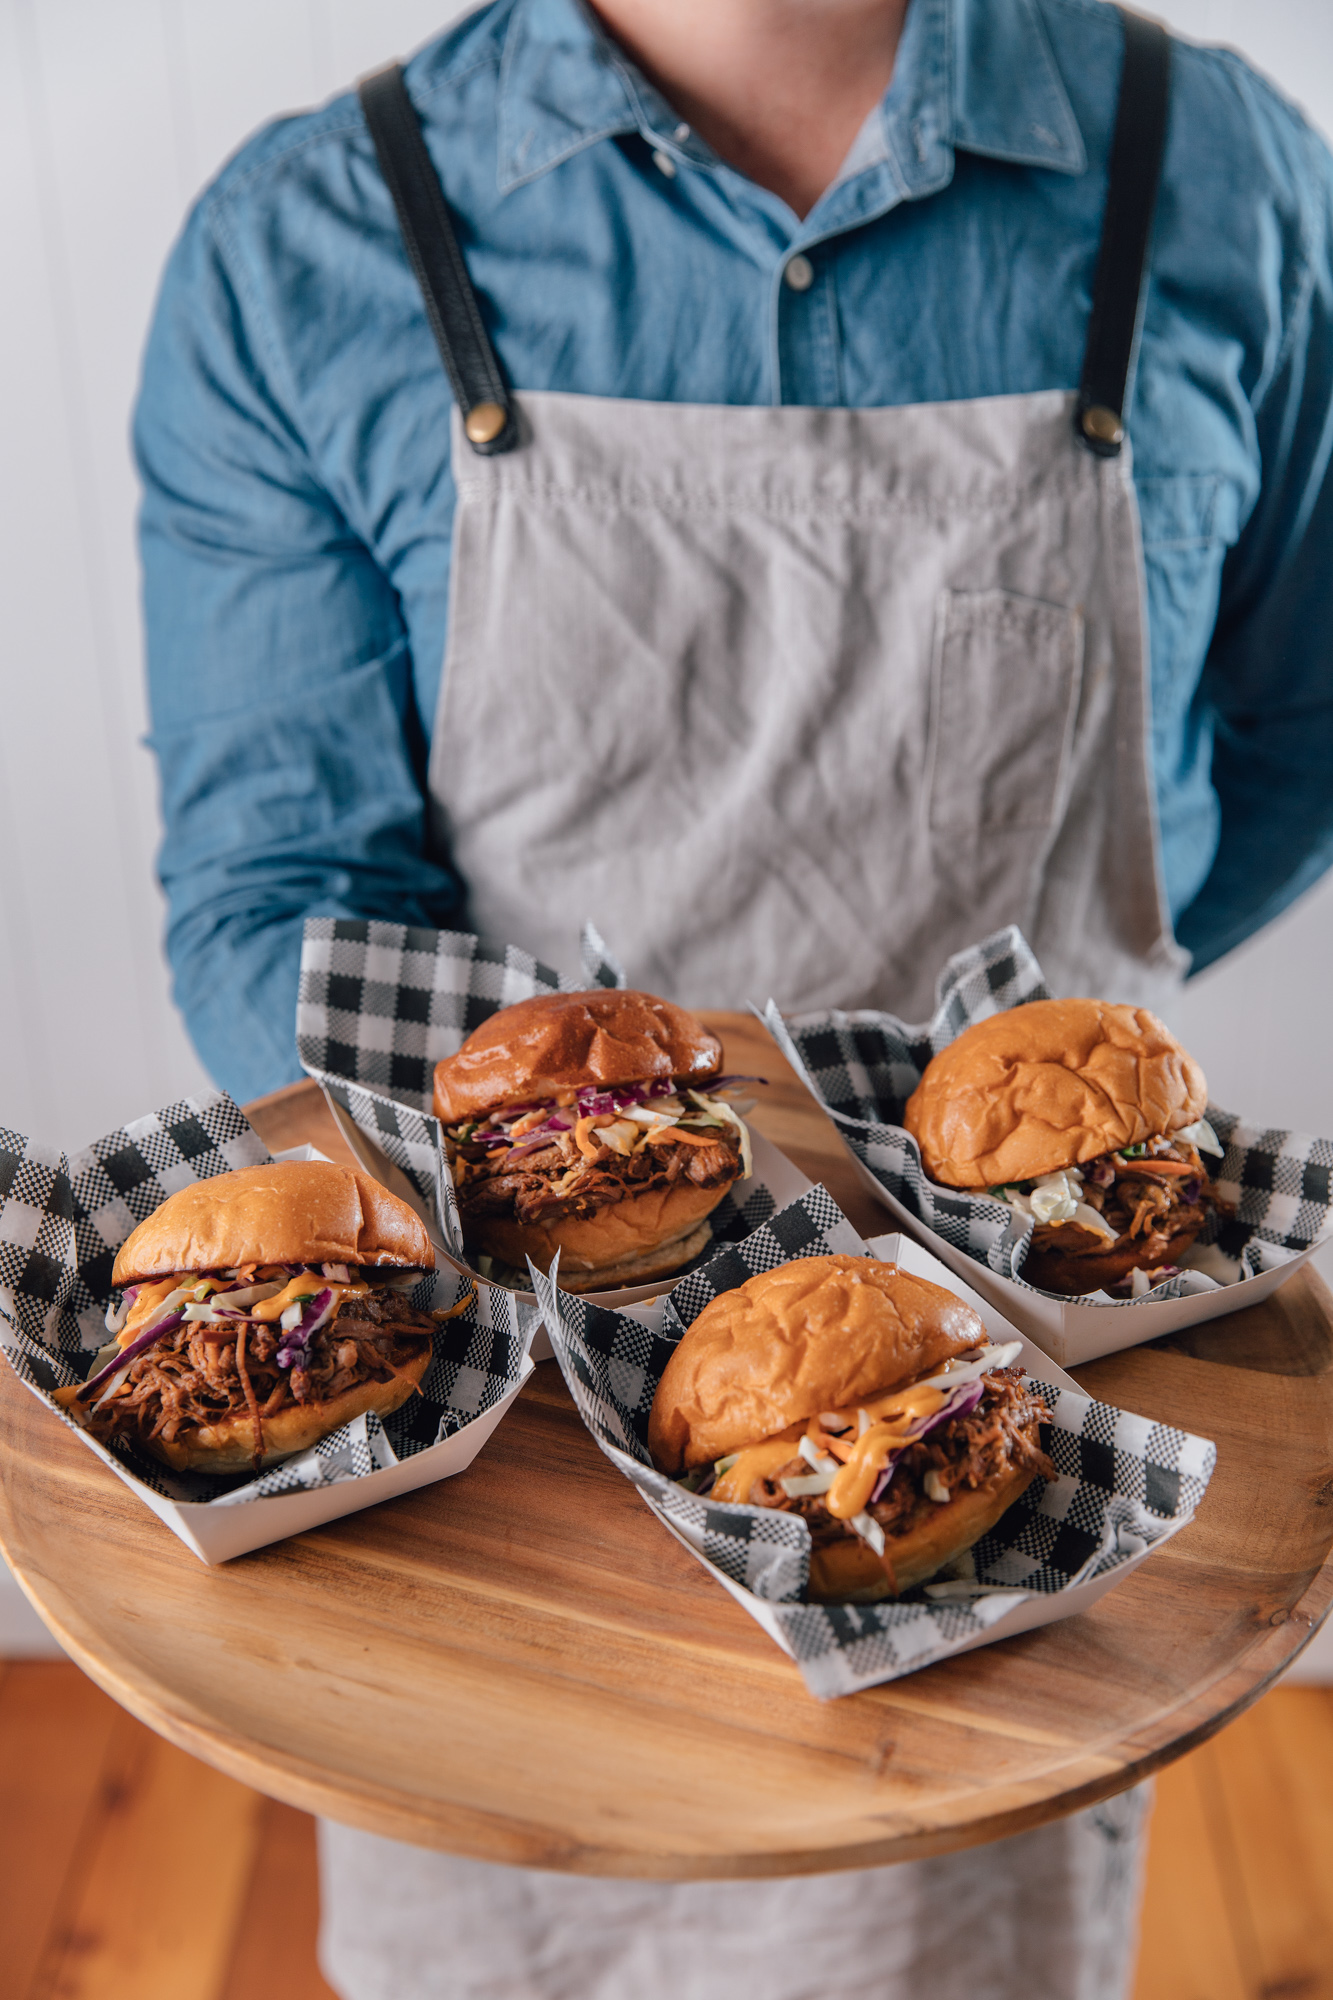 FOOD CART CATERING - PULLED PORK BURGER